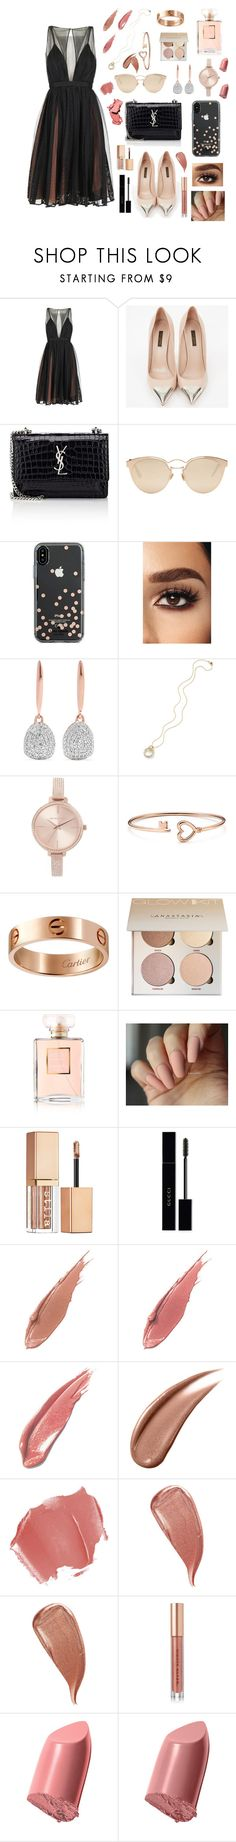 """stylish babe"" by jojogena ❤ liked on Polyvore featuring beauty, Louis Vuitton, Yves Saint Laurent, Christian Dior, Kate Spade, Monica Vinader, Michael Kors, Cartier, Chanel and Stila"